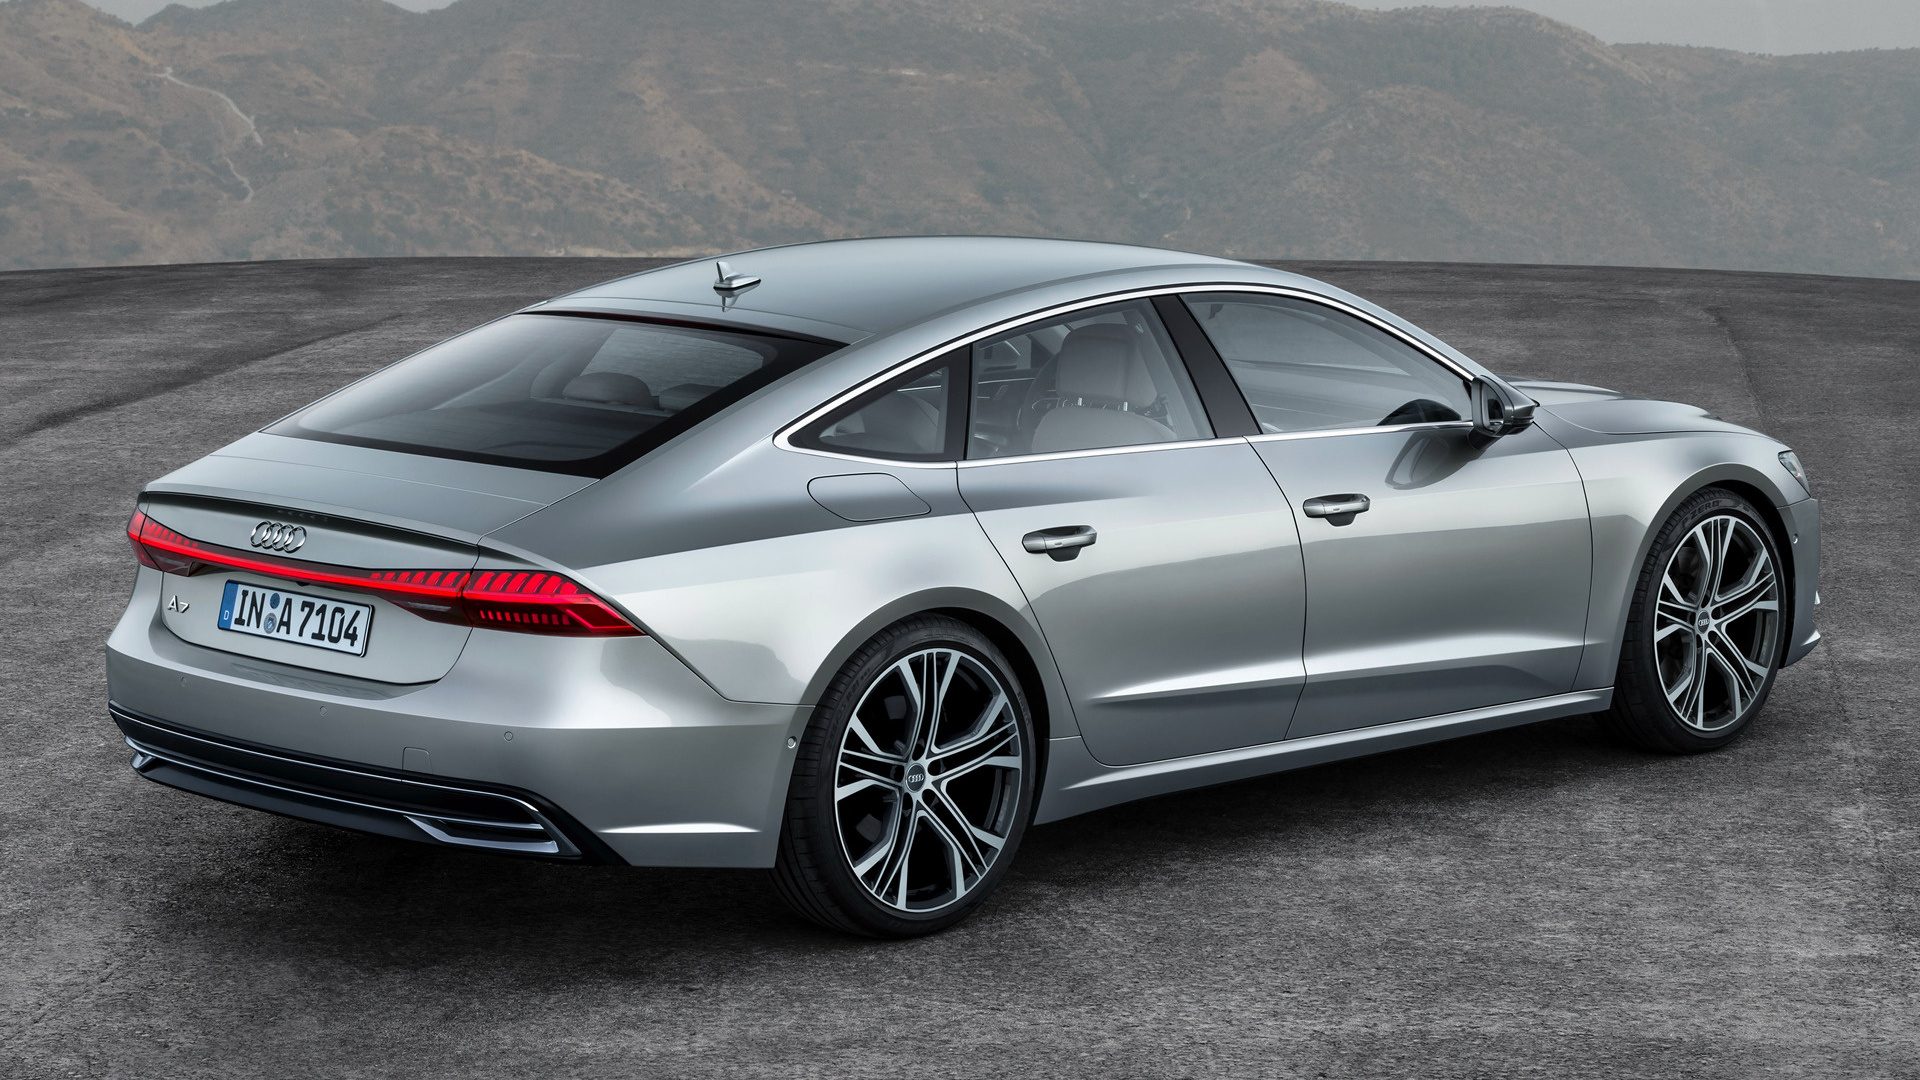 audi a7 sportback (2018) wallpapers and hd images - car pixel